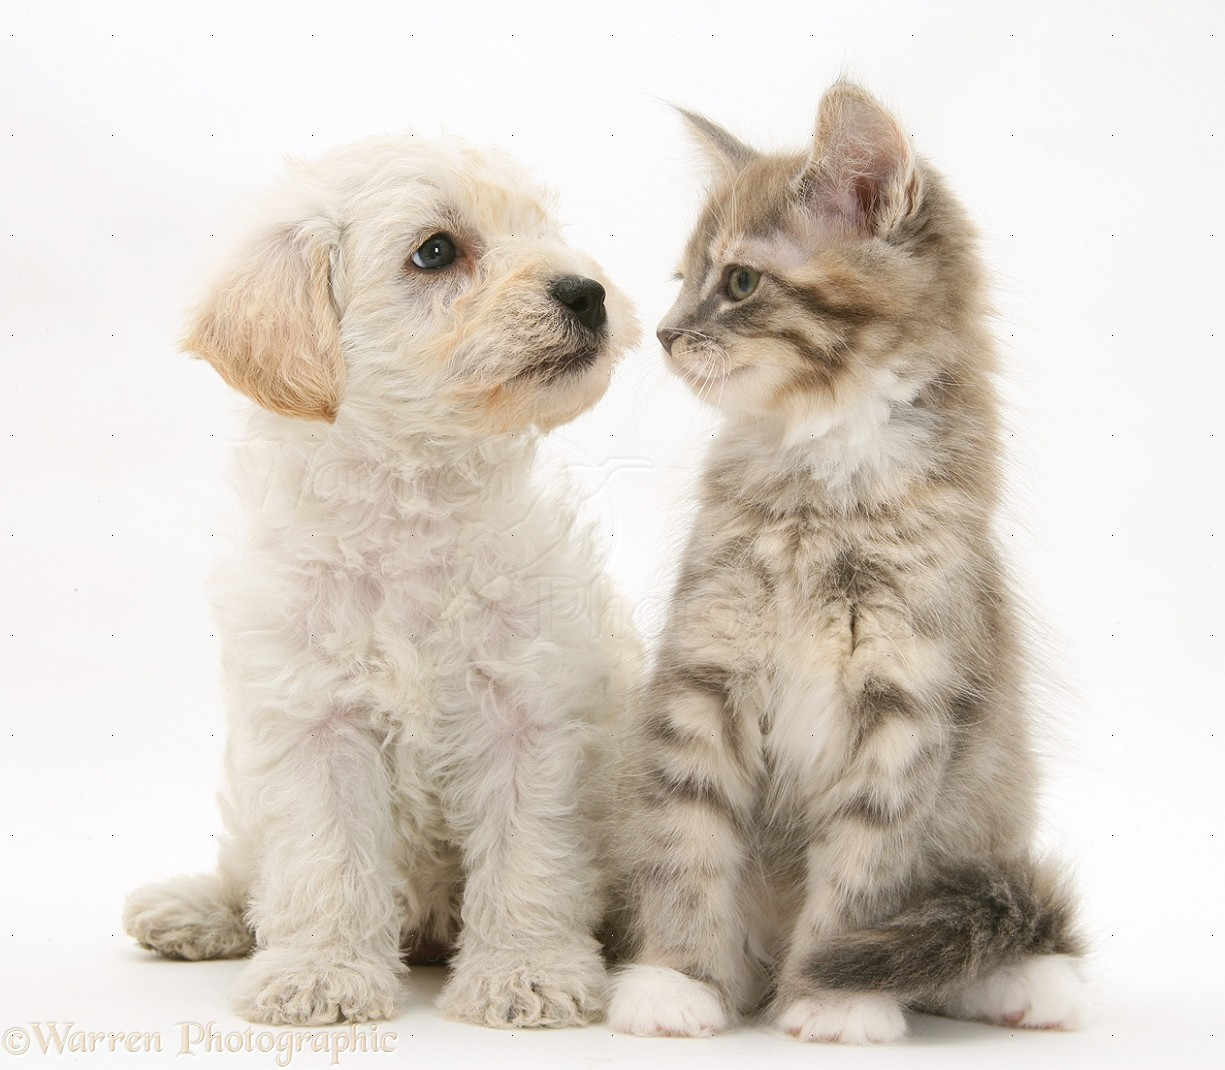 Cute Photos Of Dogs And Cats